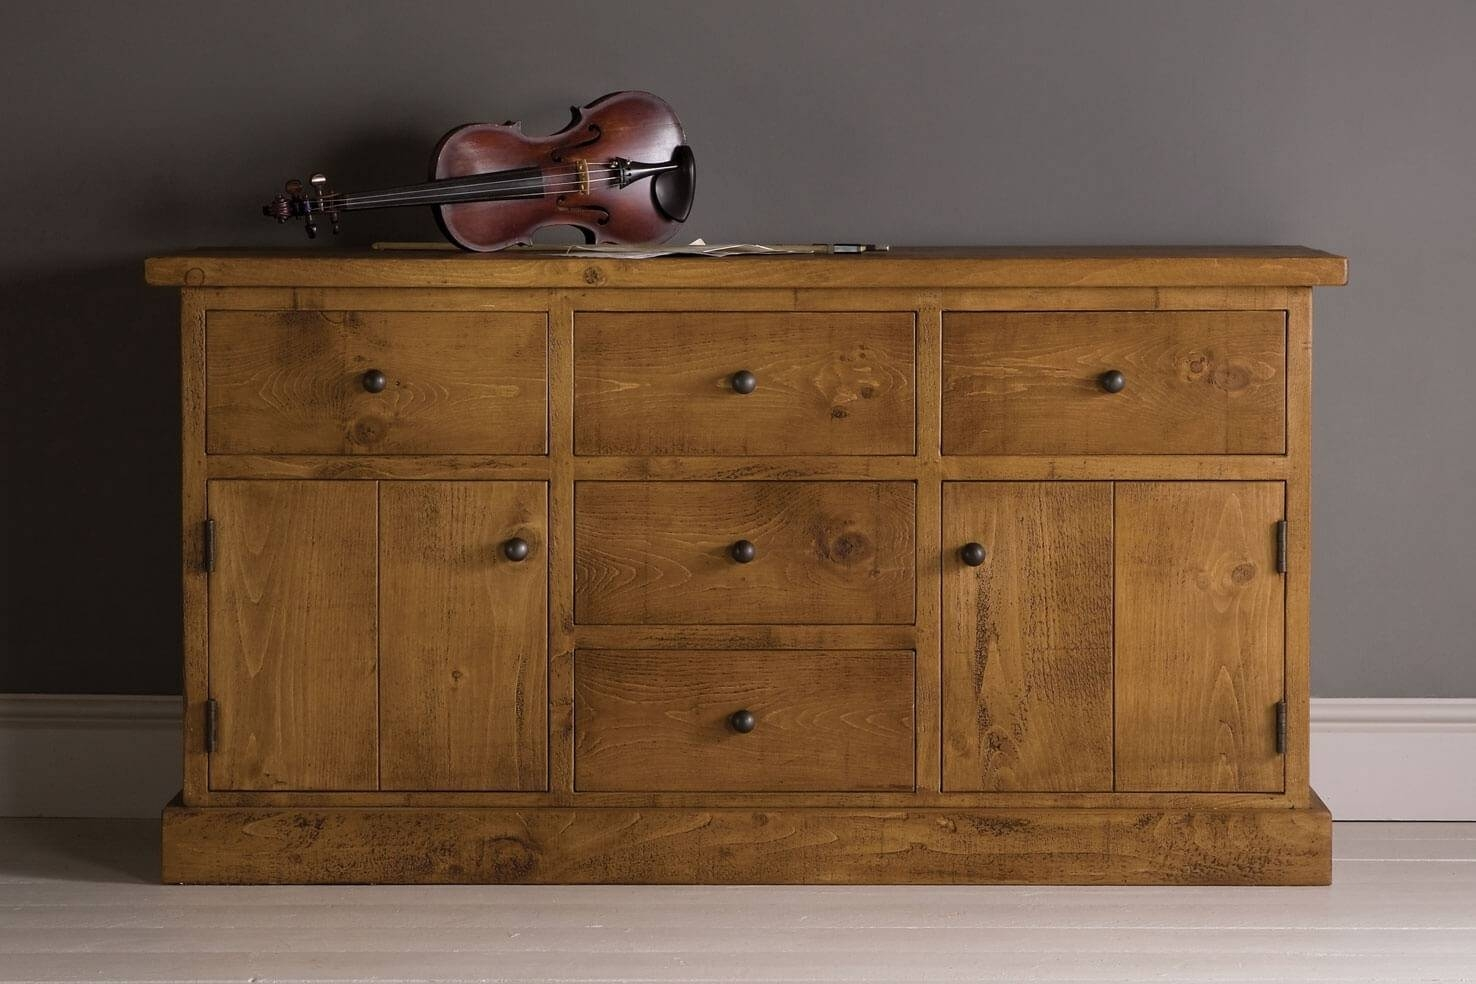 Rustic Wooden Sideboards | Oak & Pine | Indigo Furniture With Regard To Pine Sideboards (View 8 of 15)